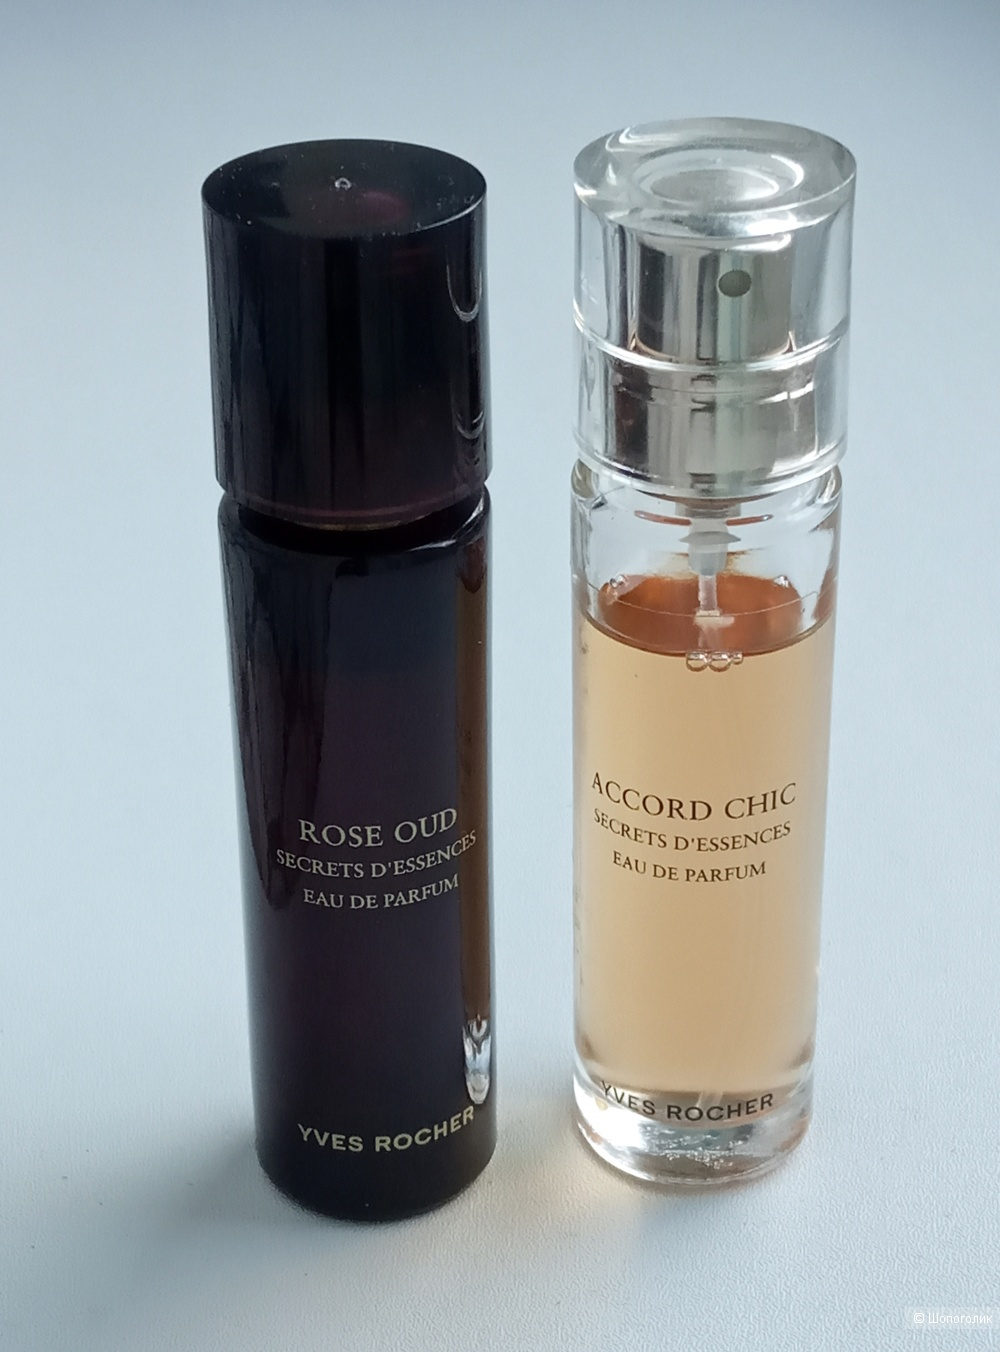 Yves Rocher  Accord Chic и Rose Oud